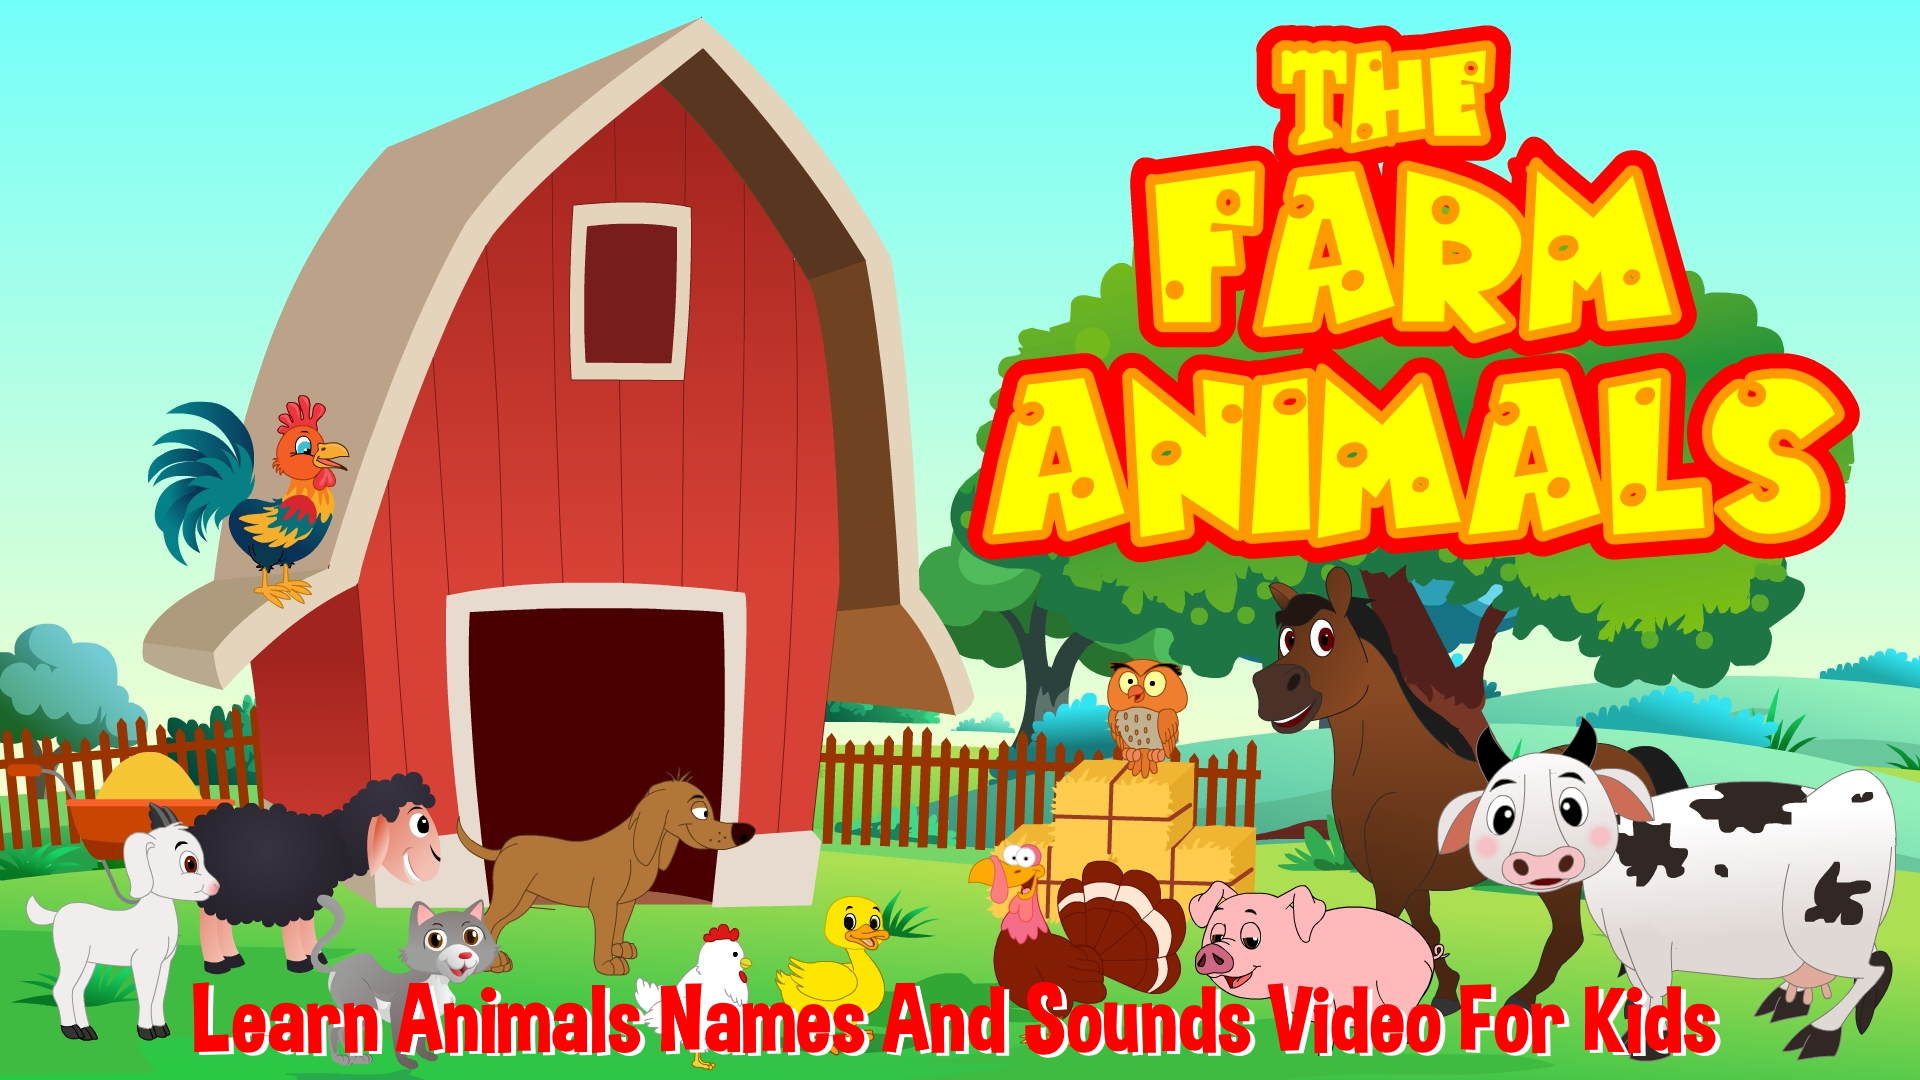 Amazon com: Watch The Farm Animals - Learn Animals Names And